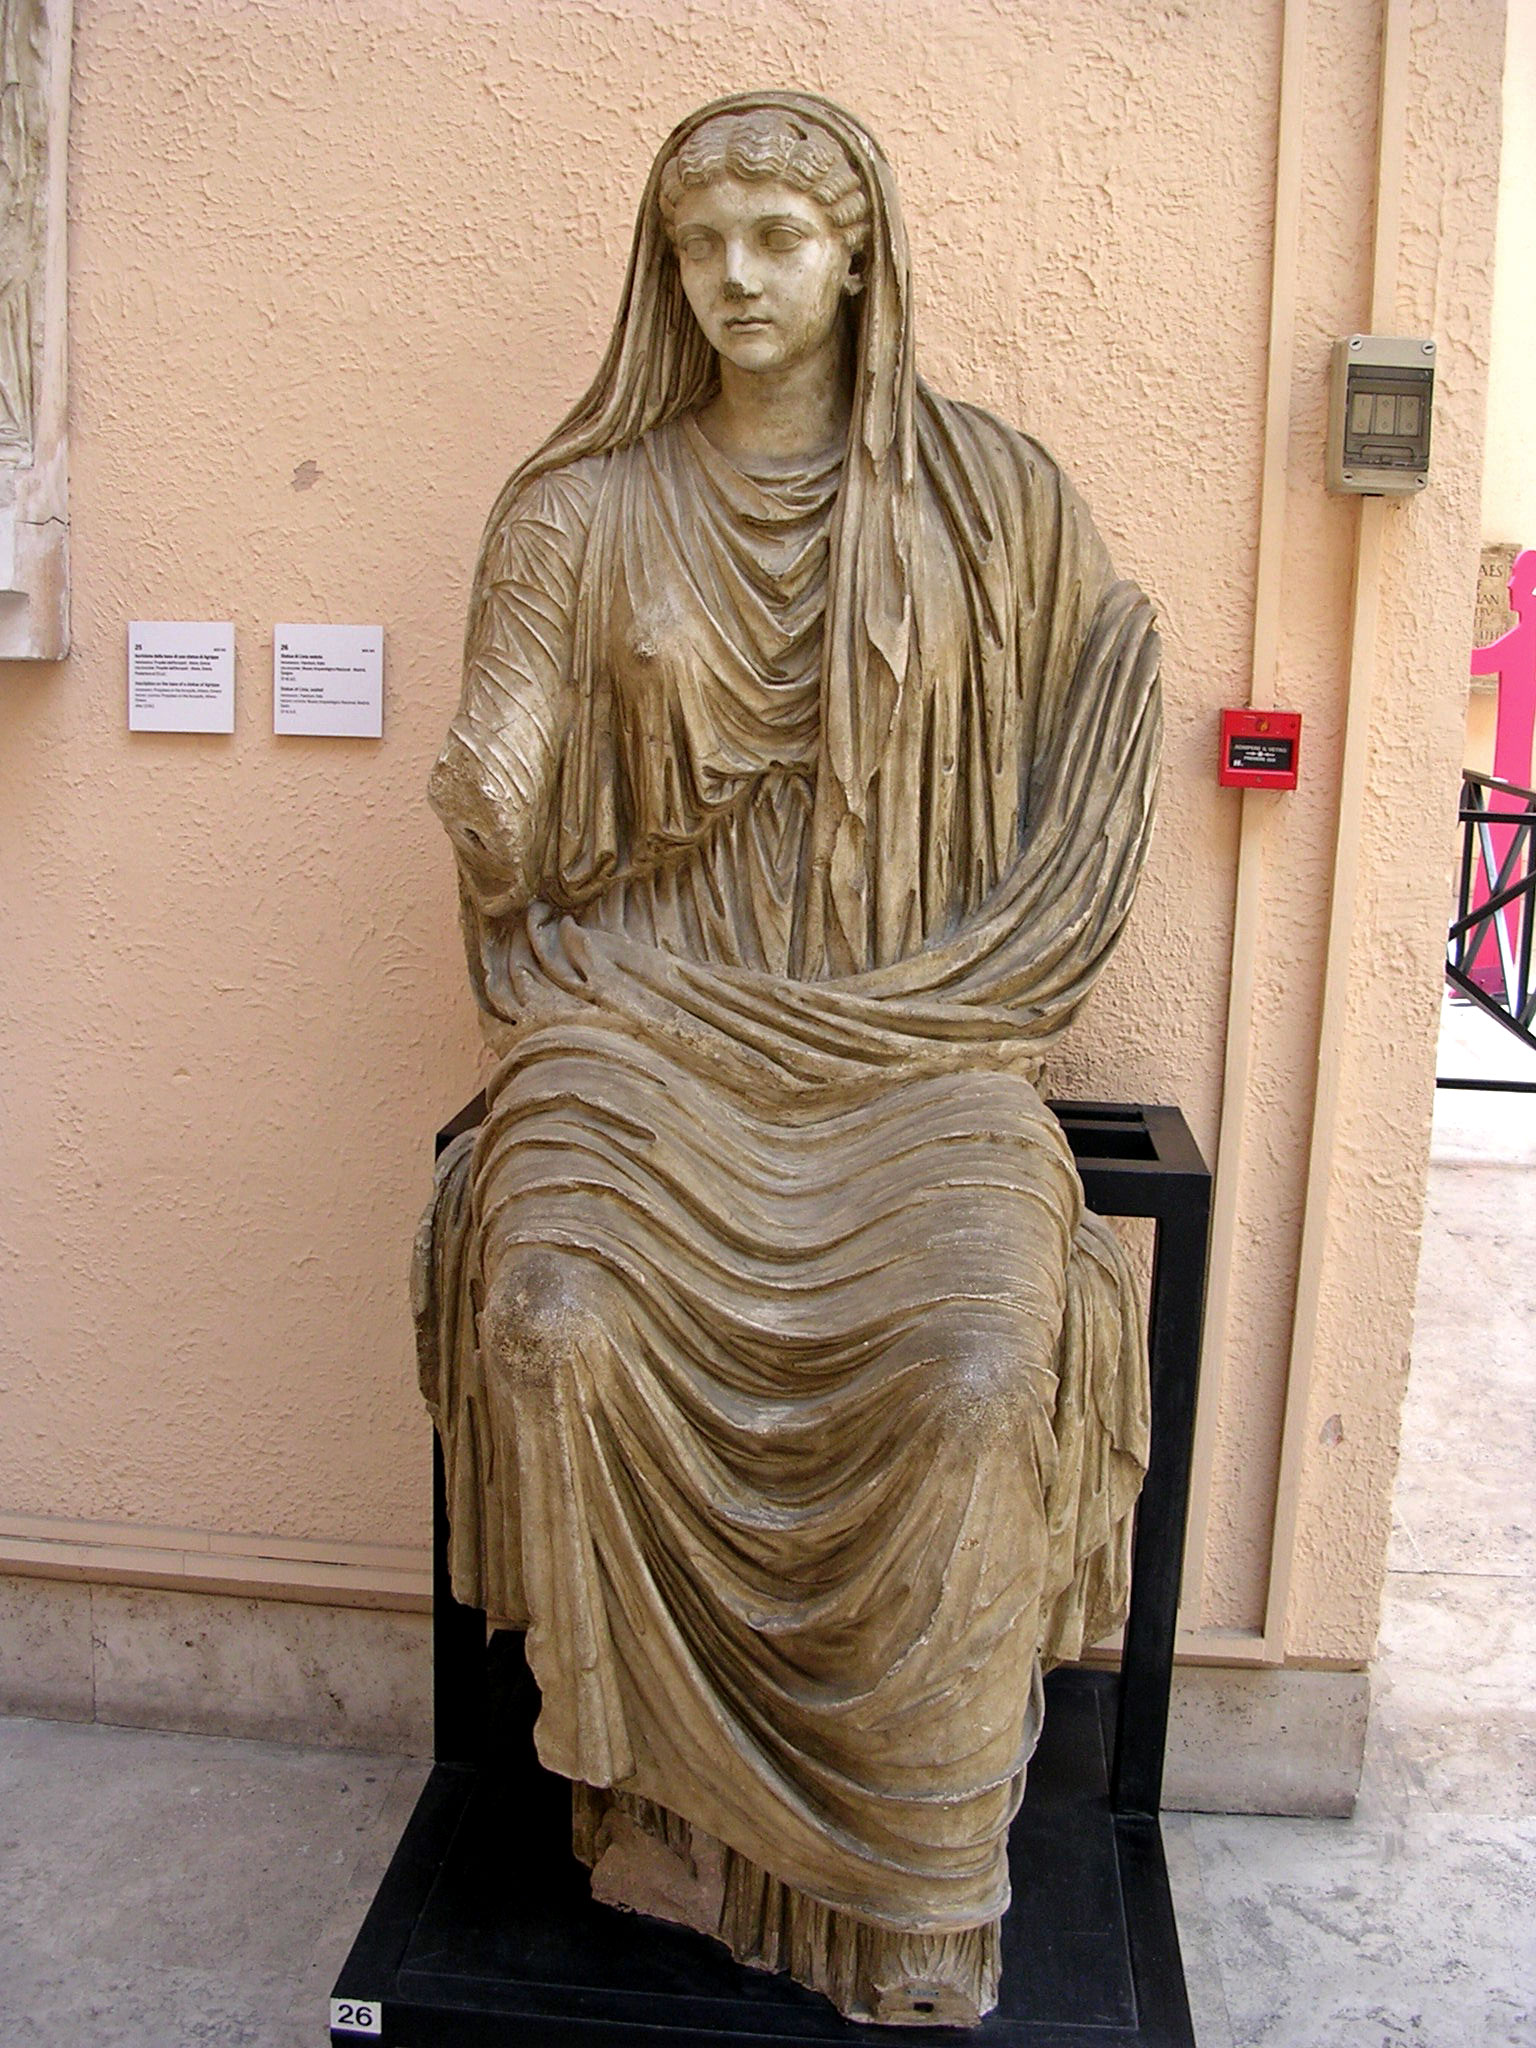 Statue of seated Livia. First quarter of the 1st century CE. Plaster cast. Rome, Museum of Roman Civilization